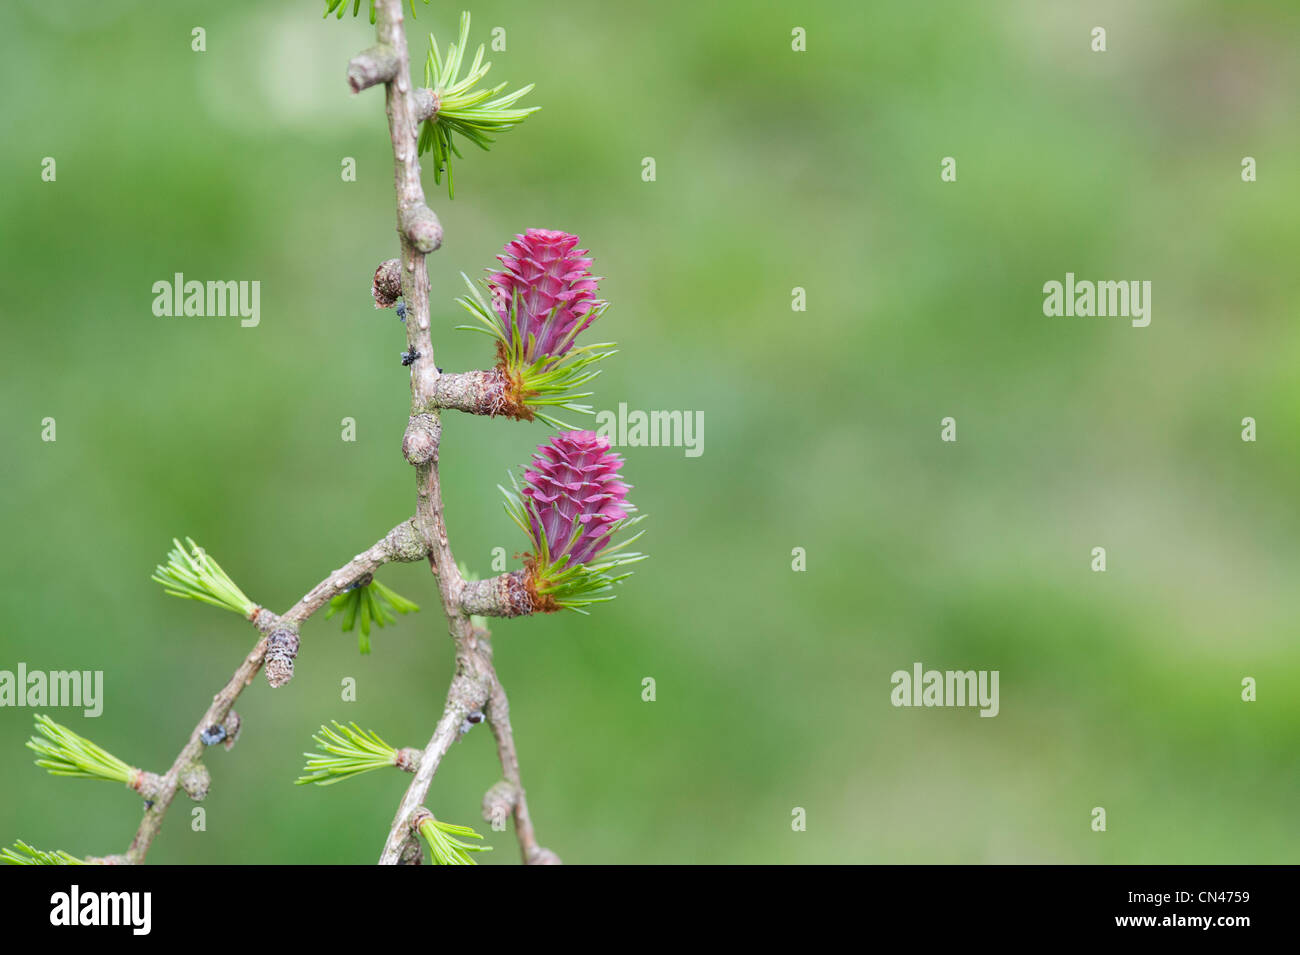 Larix decidua. Larch tree female flower in spring - Stock Image